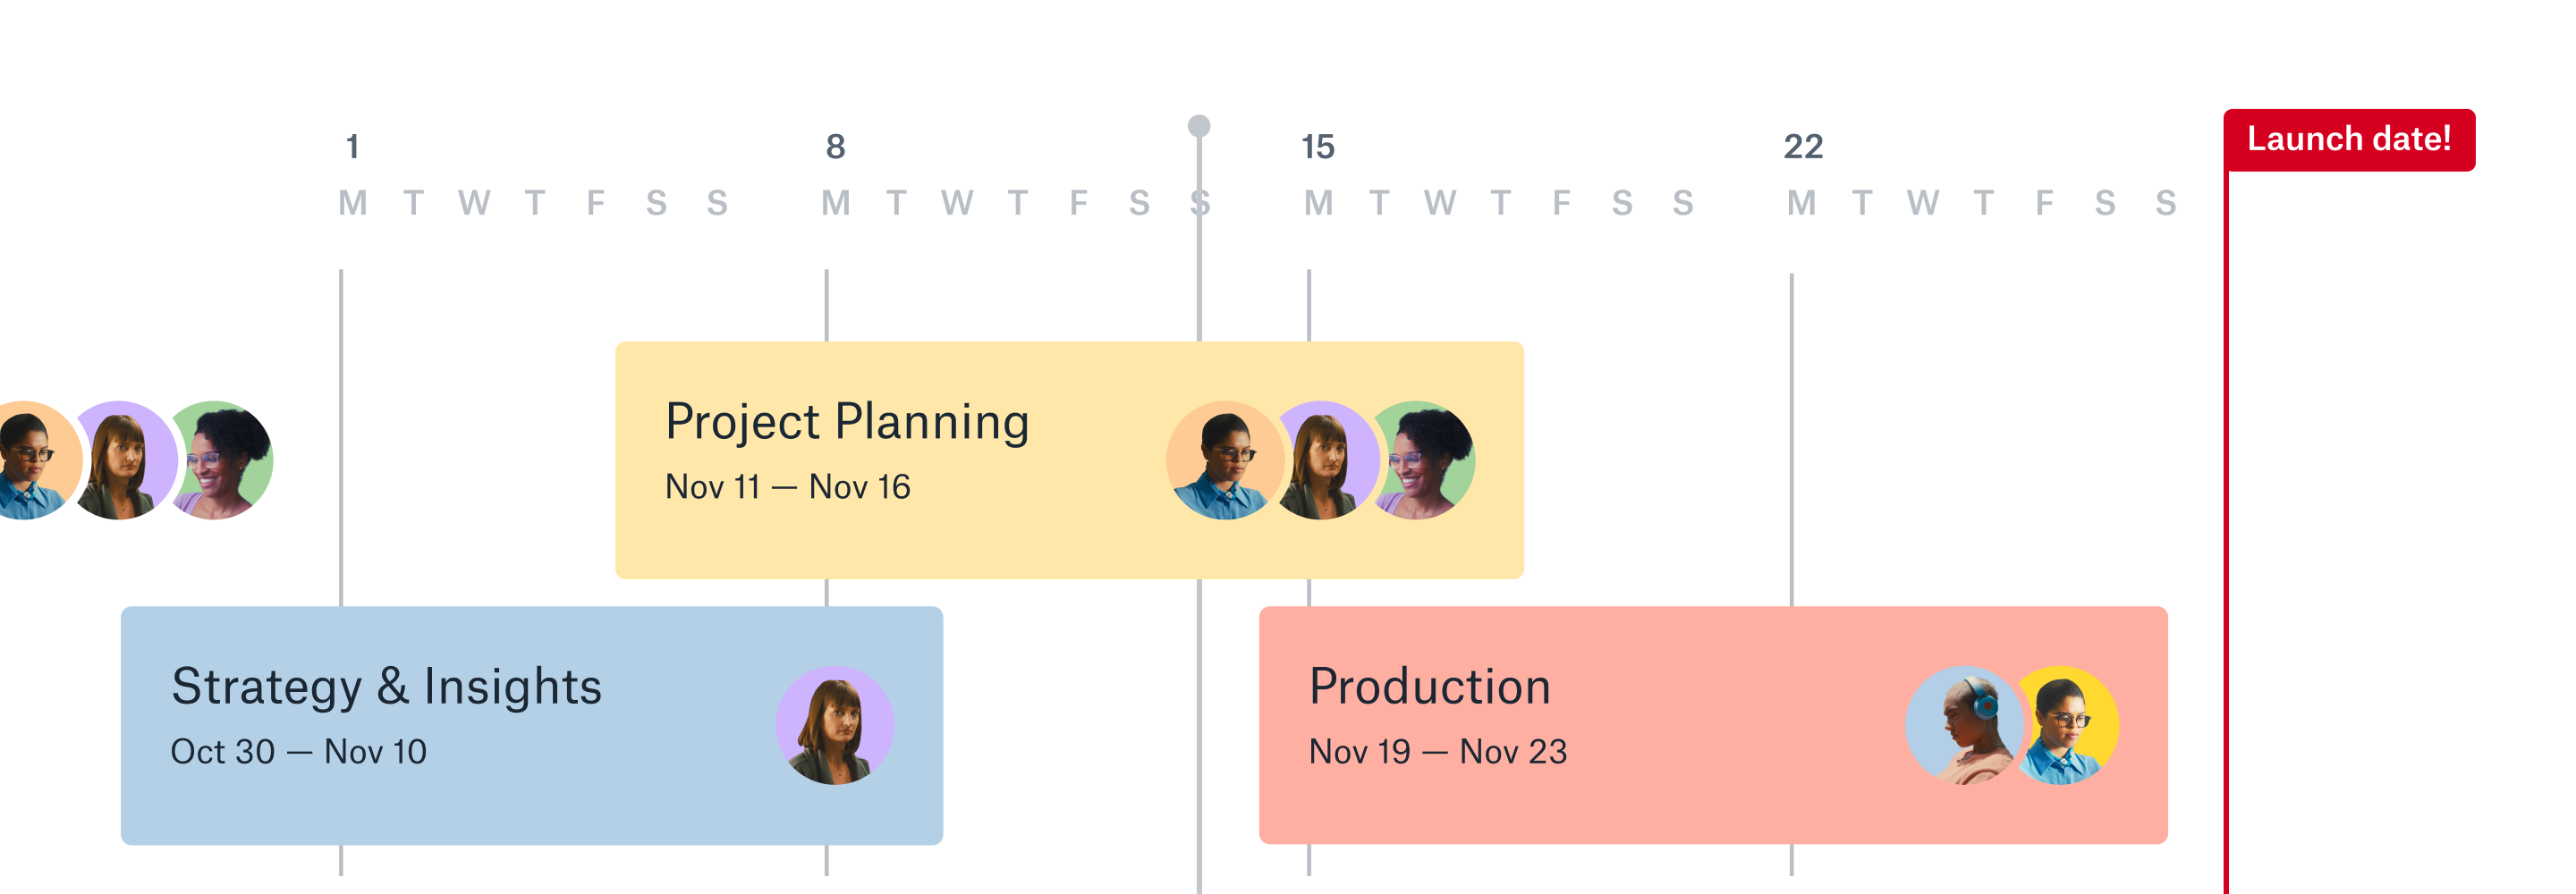 Timeline of team members working towards a launch date.